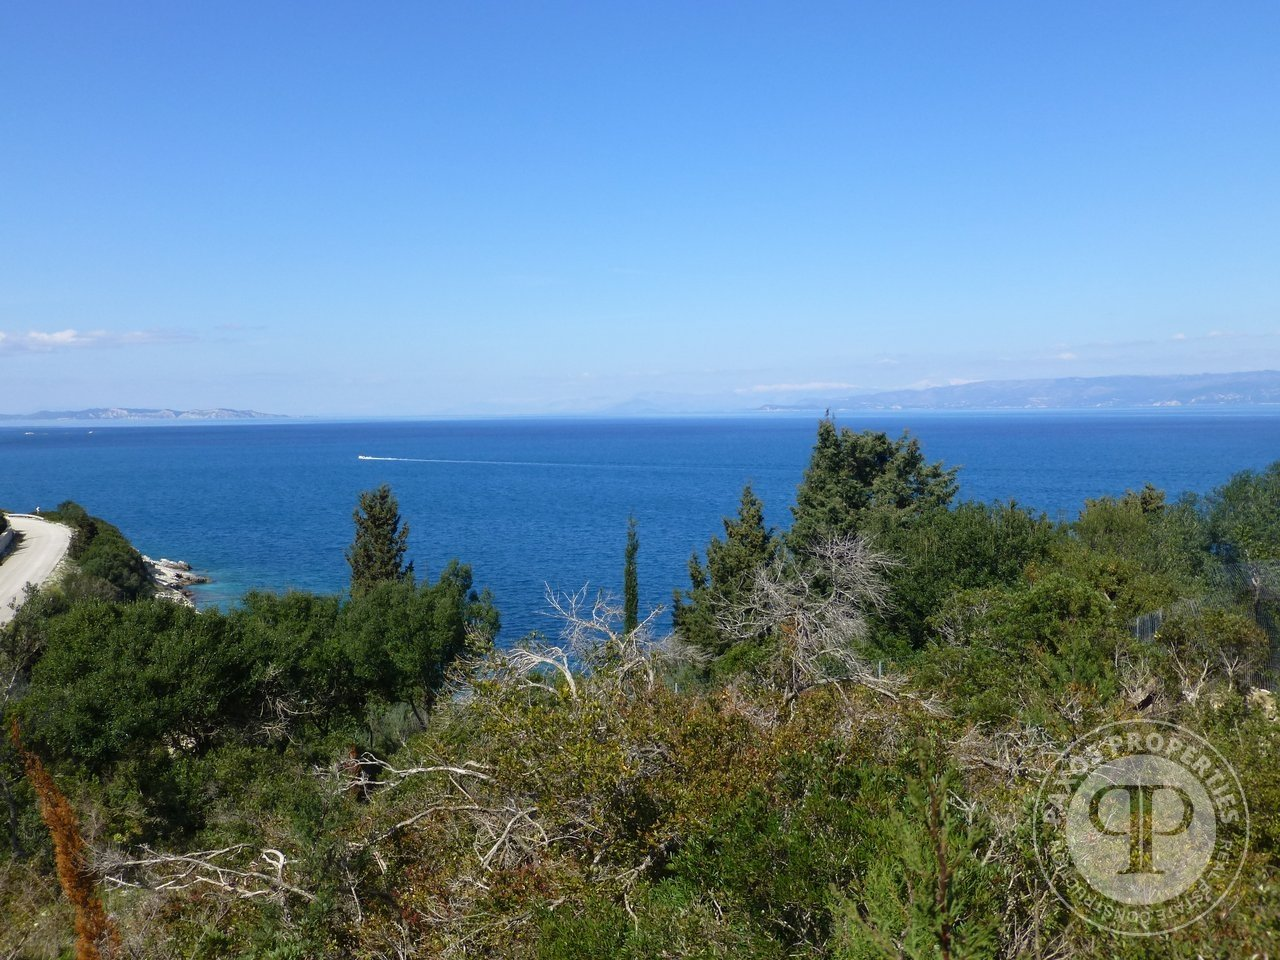 For sale Plot of land  with building permit 640.000€ Kloni Gouli (code F-112)